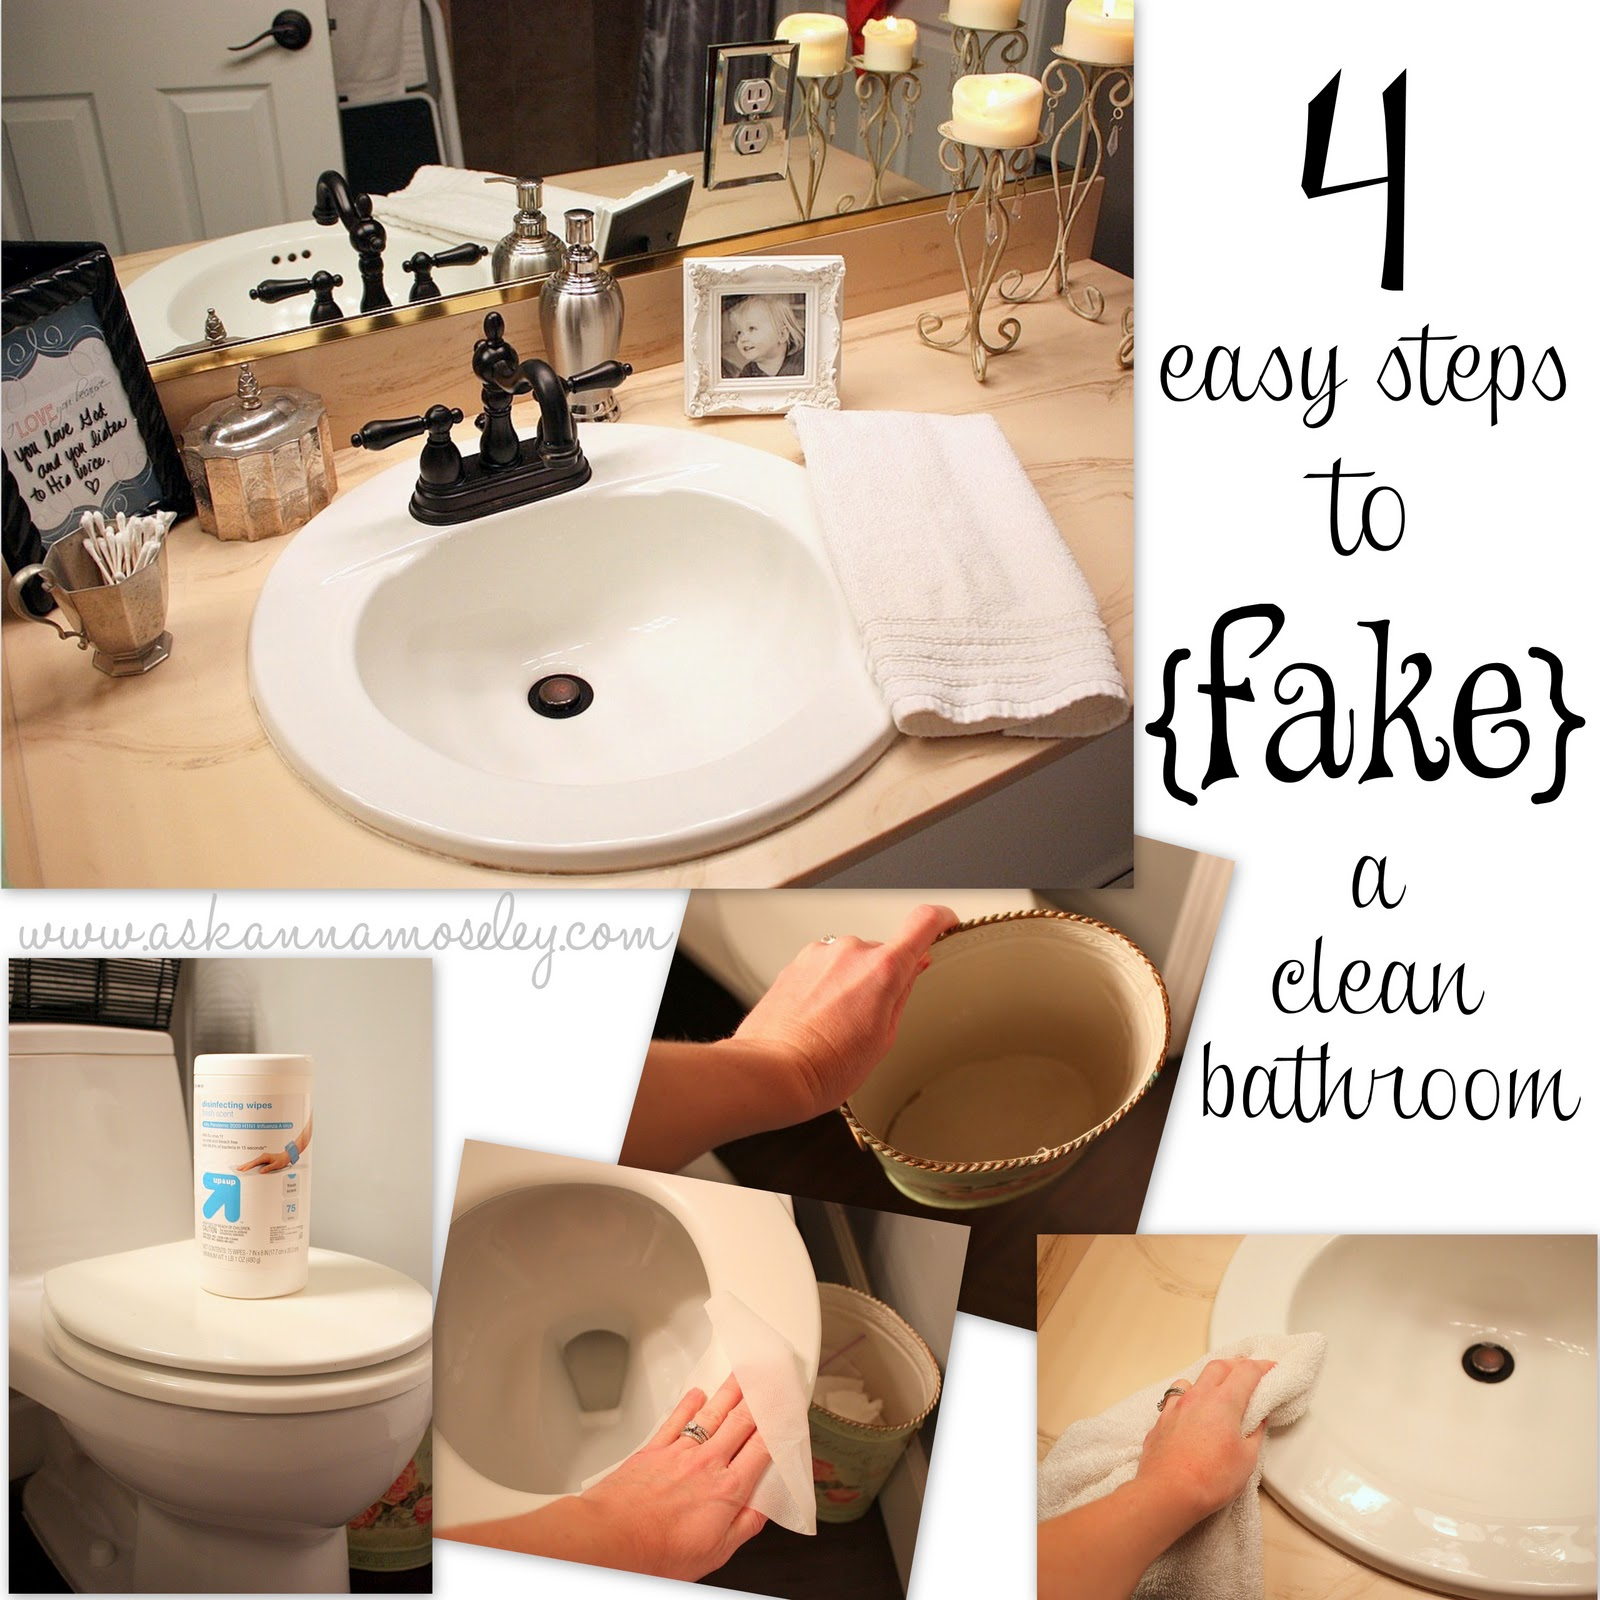 How to fake a clean bathroom by my guest anna organizing How to clean bathtub